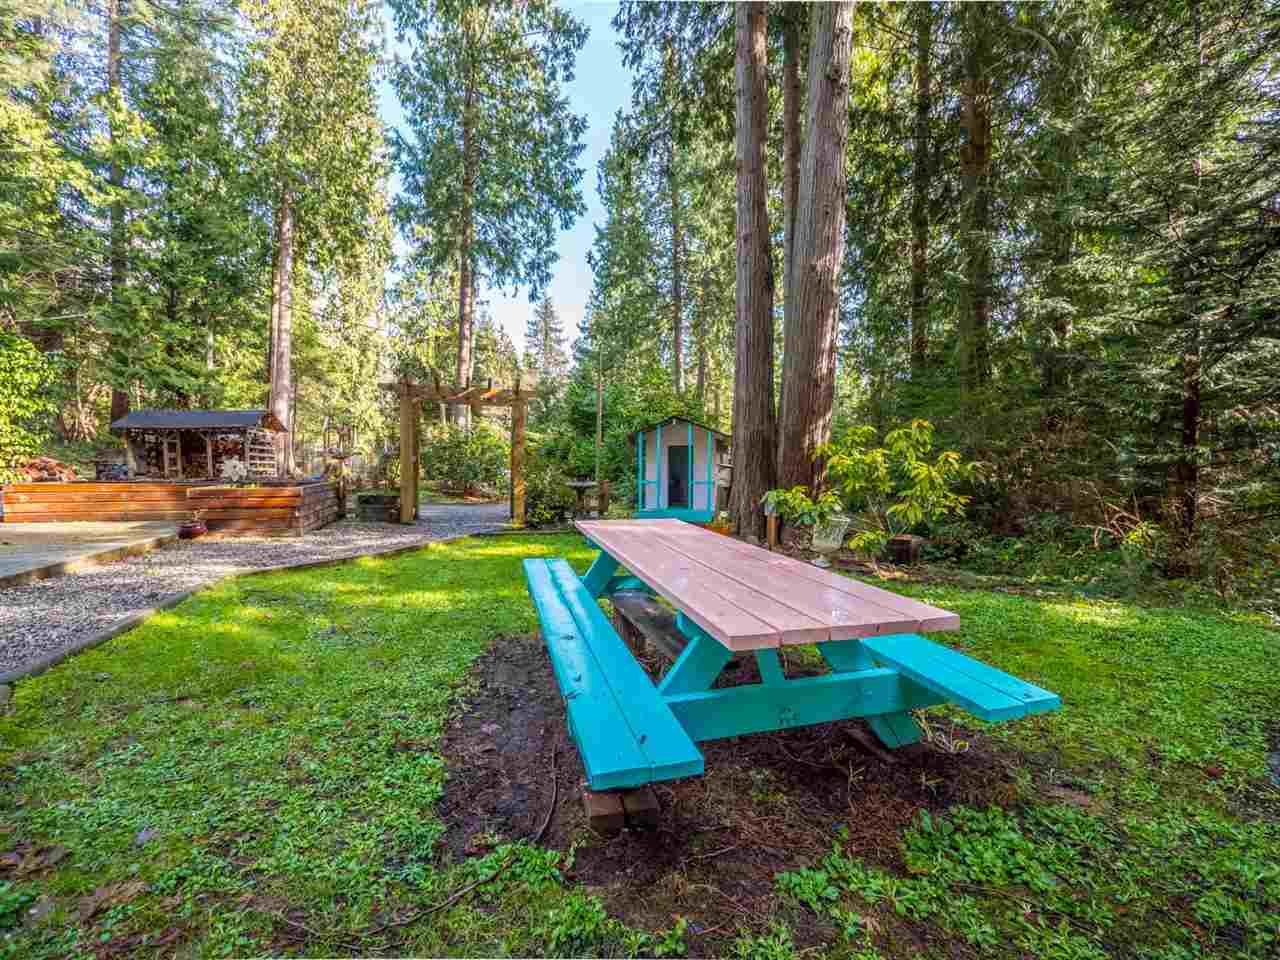 Photo 14: Photos: 1421 MARGARET Road: Roberts Creek House for sale (Sunshine Coast)  : MLS® # R2243186